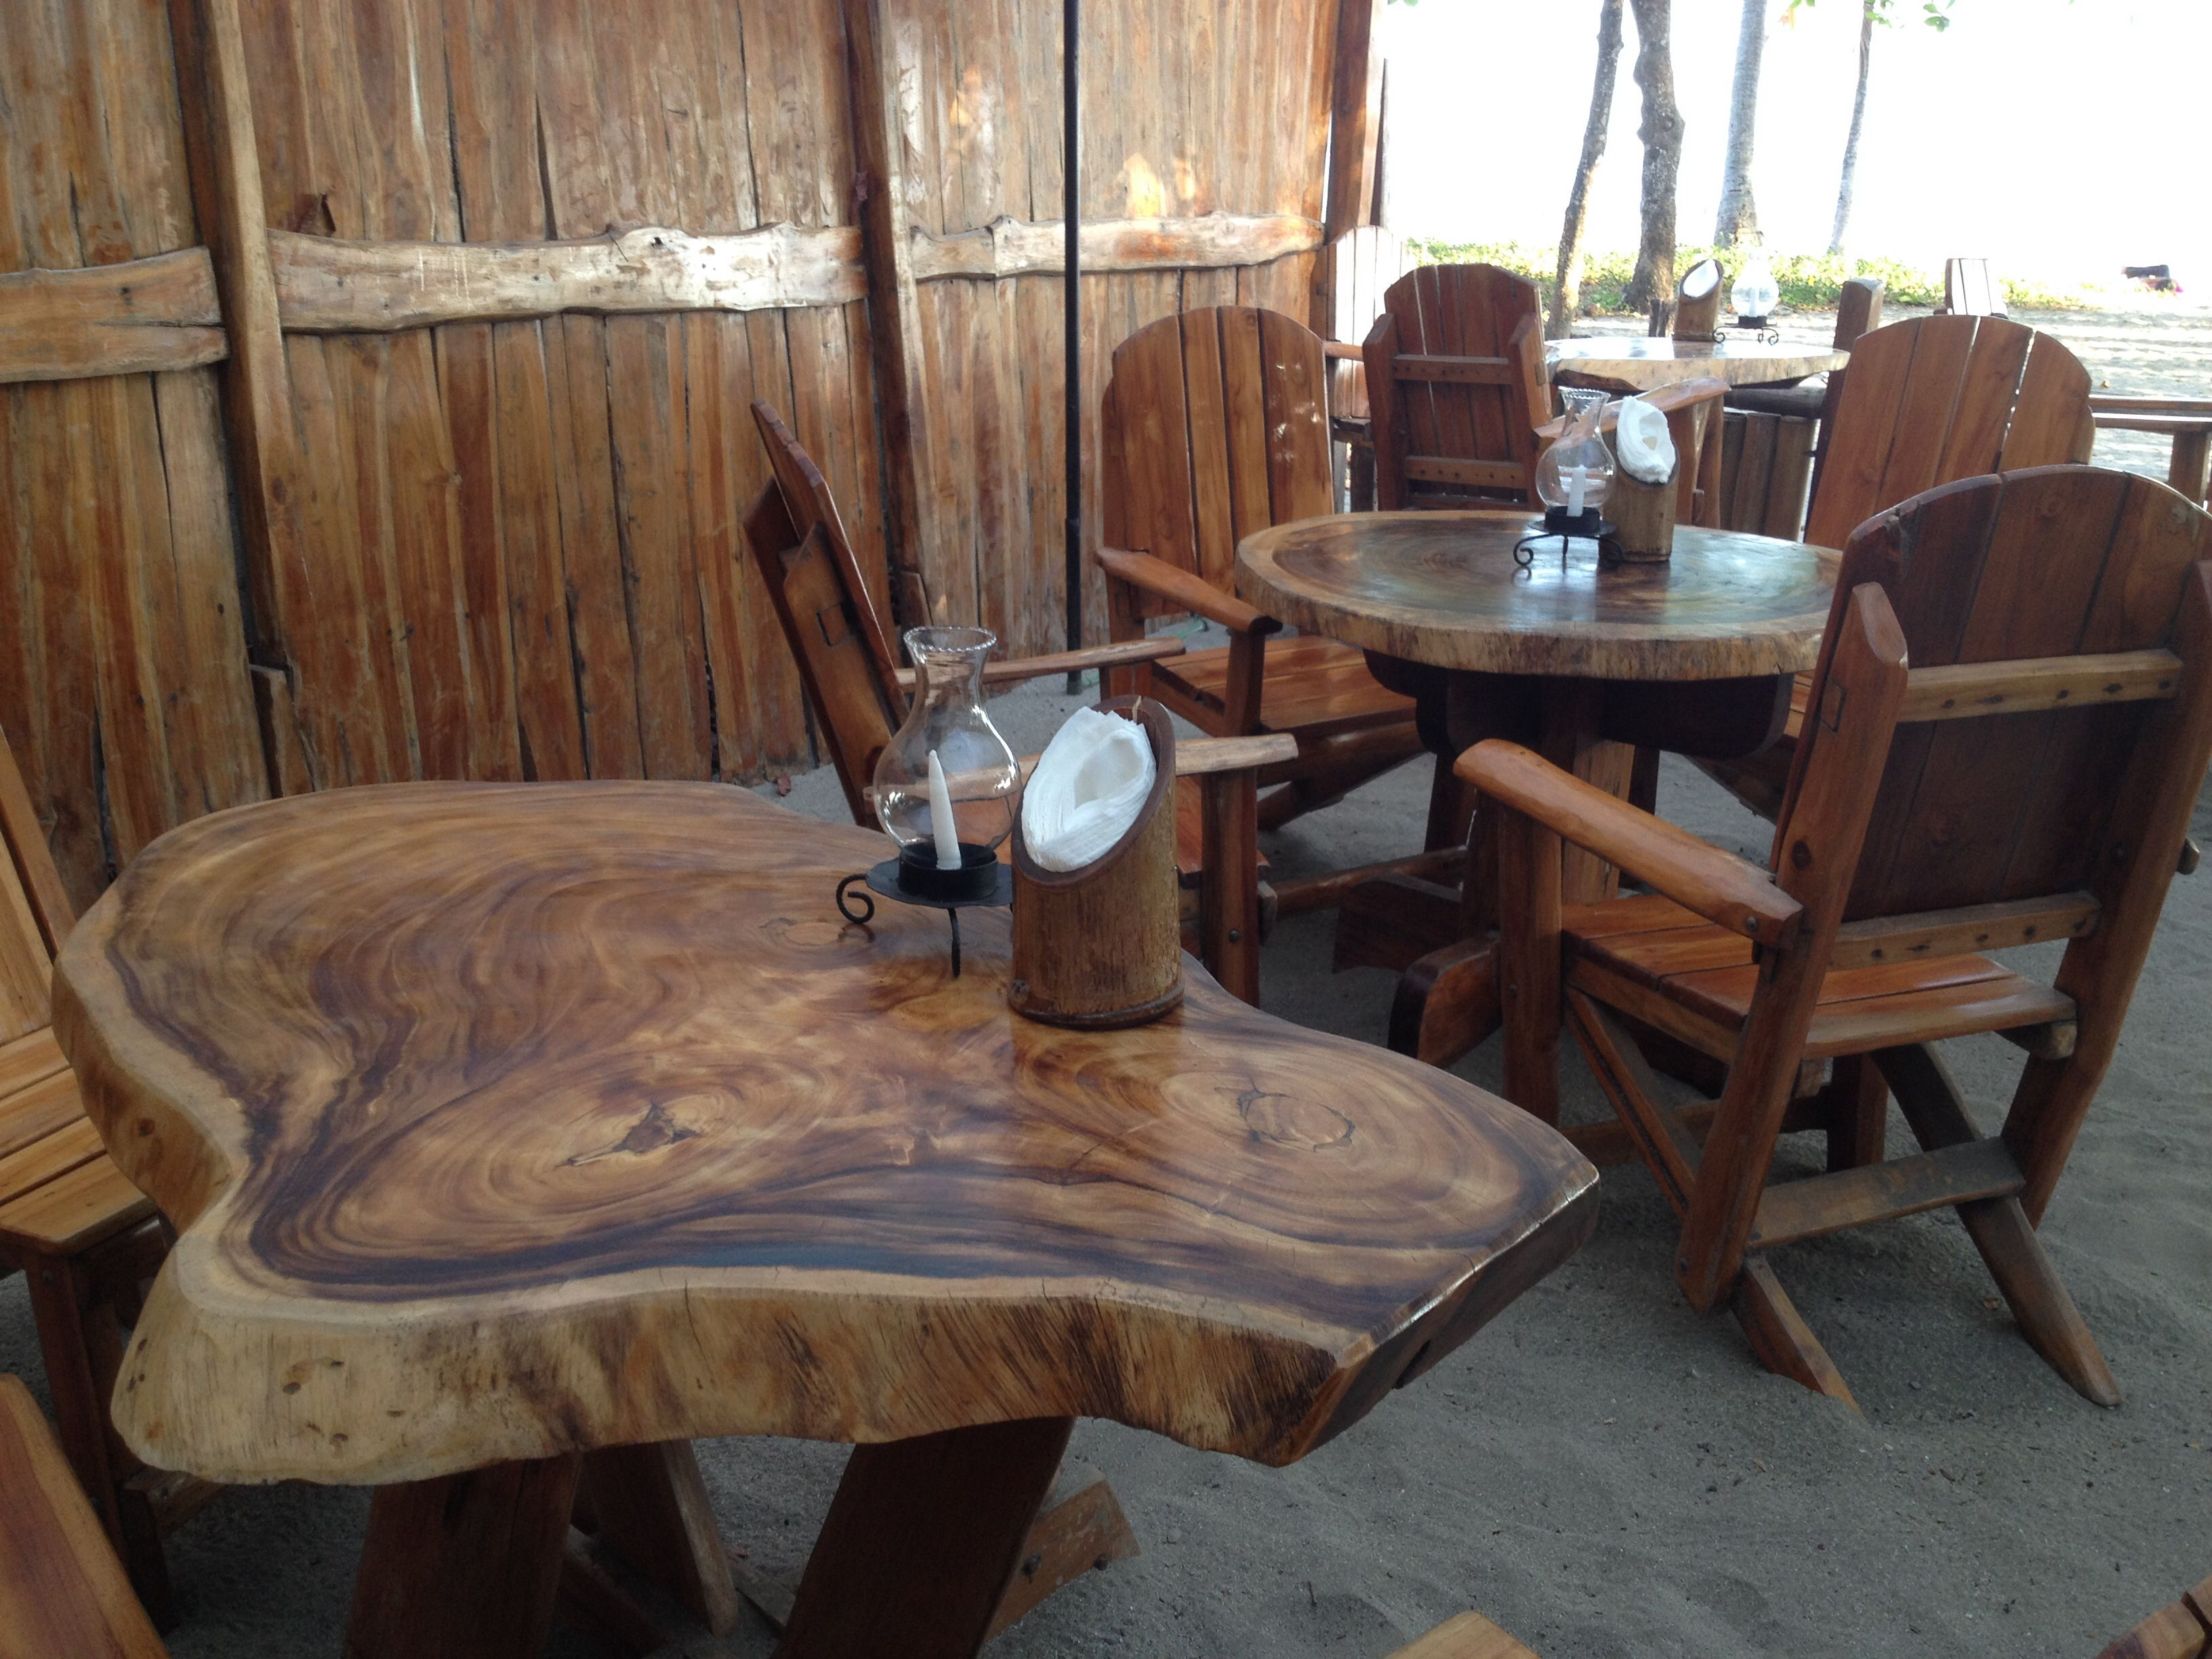 Rustic, Perfect W Sand Between Your Toes, Large Scale Wood Furniture At  Restaurant On